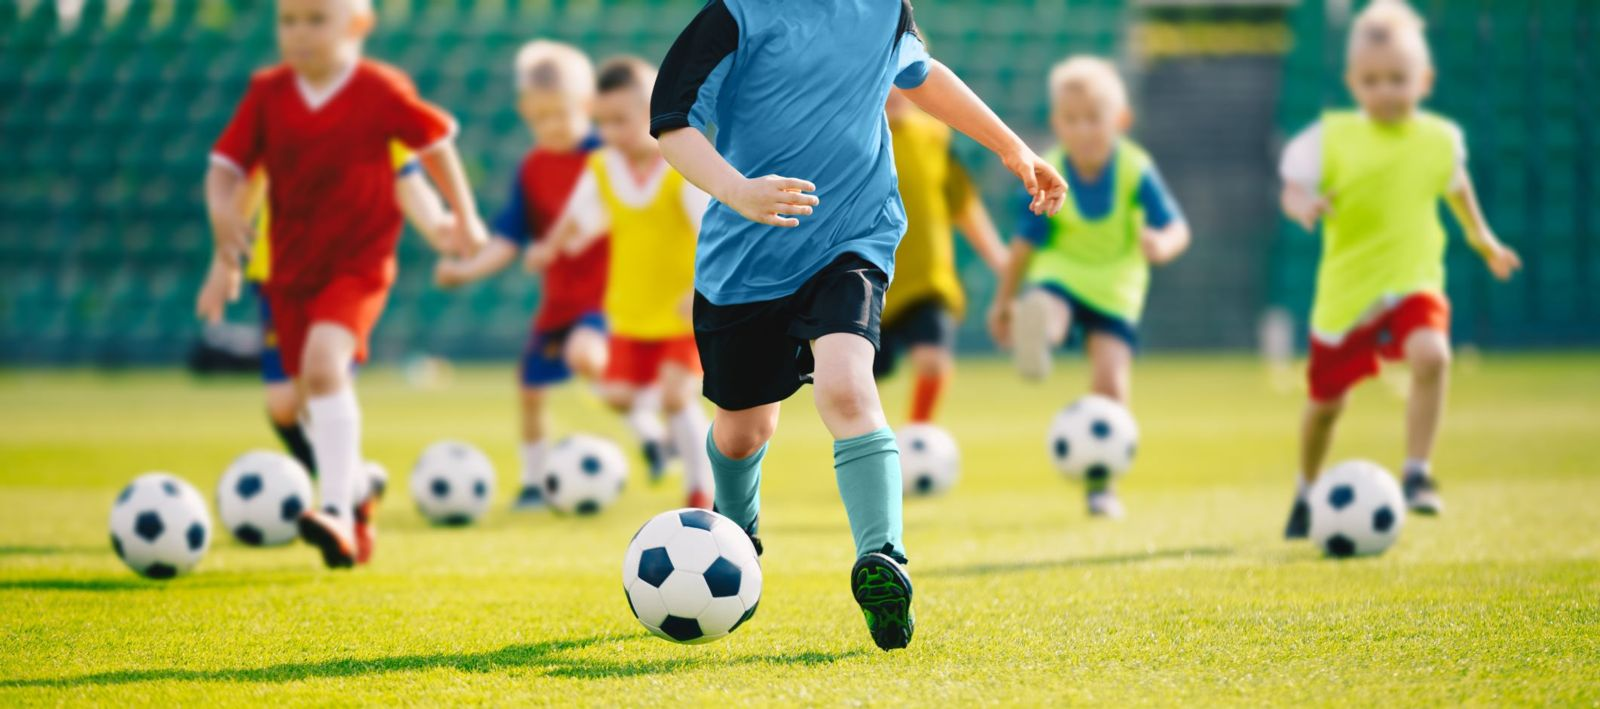 If your child's soccer cleats don't fit well, kicking the ball can put him or her at risk for an ingrown toenail.